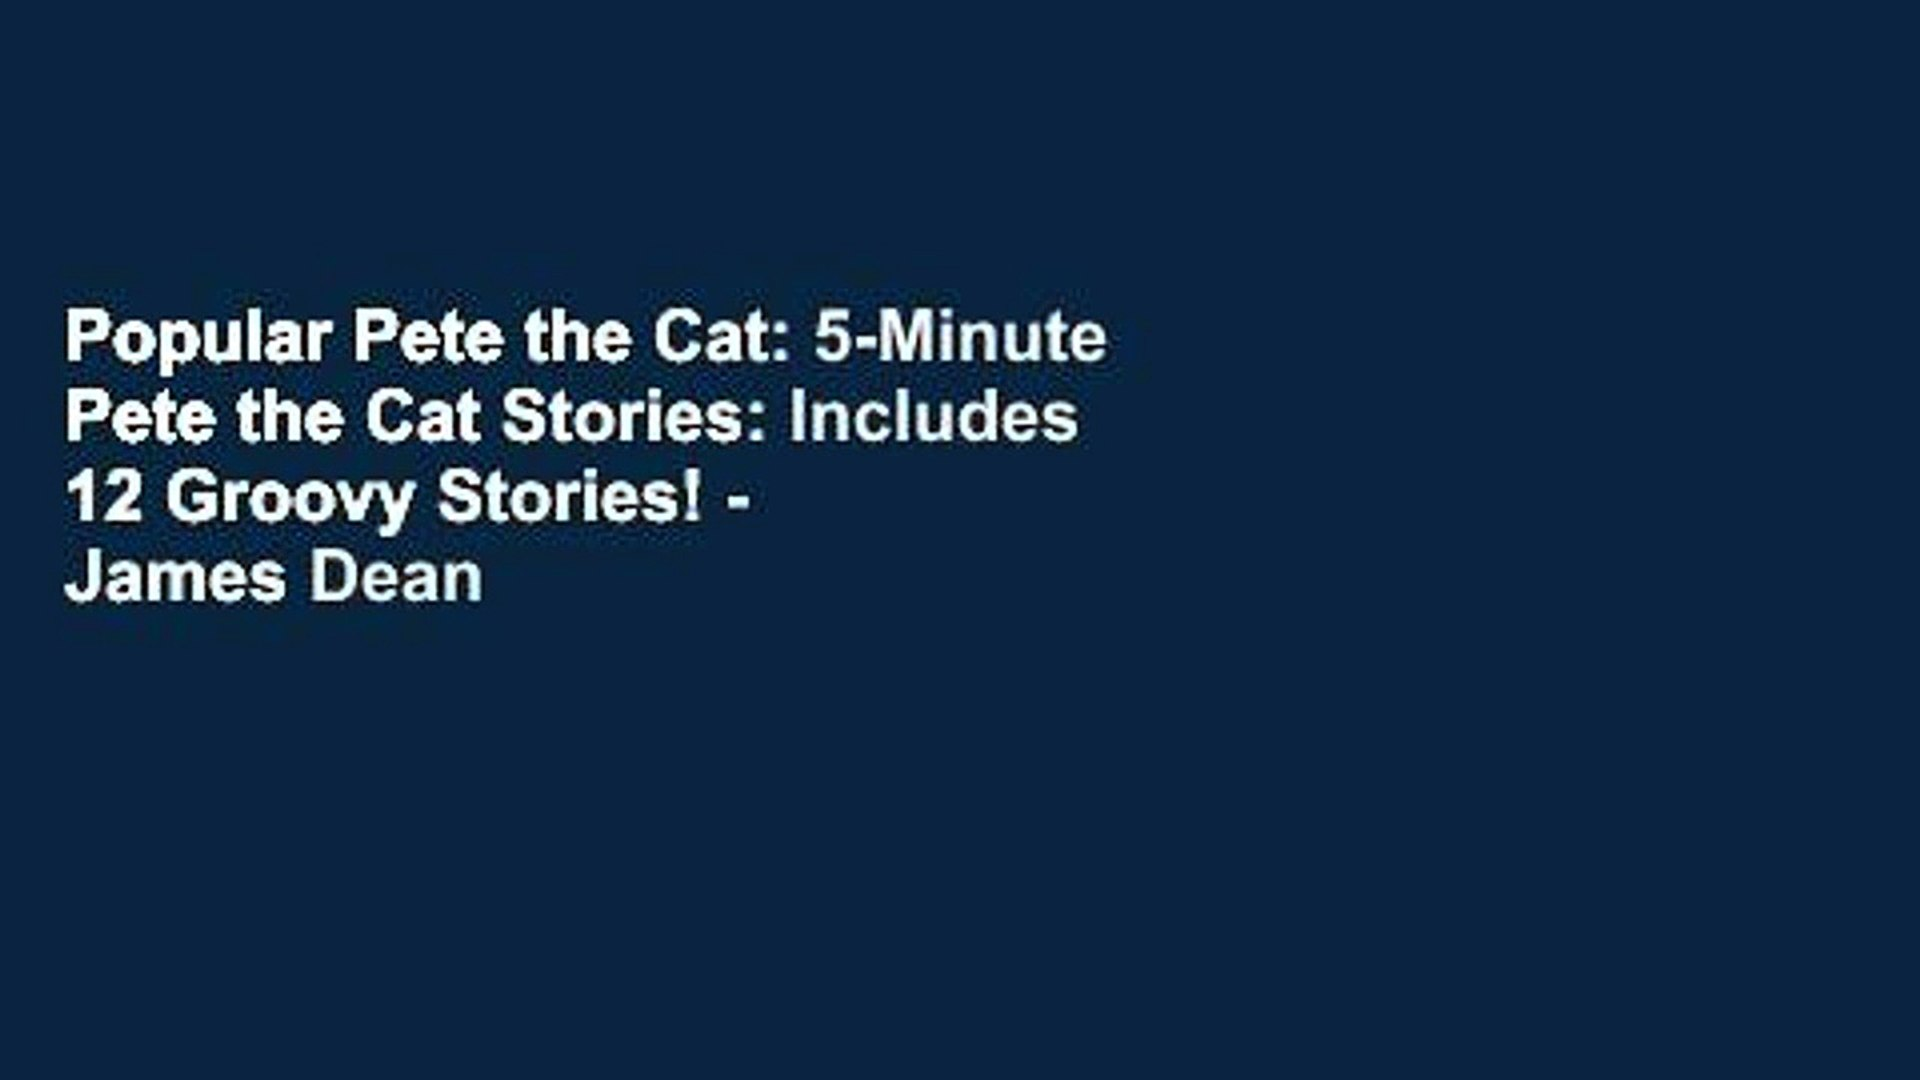 Popular Pete the Cat: 5-Minute Pete the Cat Stories: Includes 12 Groovy Stories! - James Dean